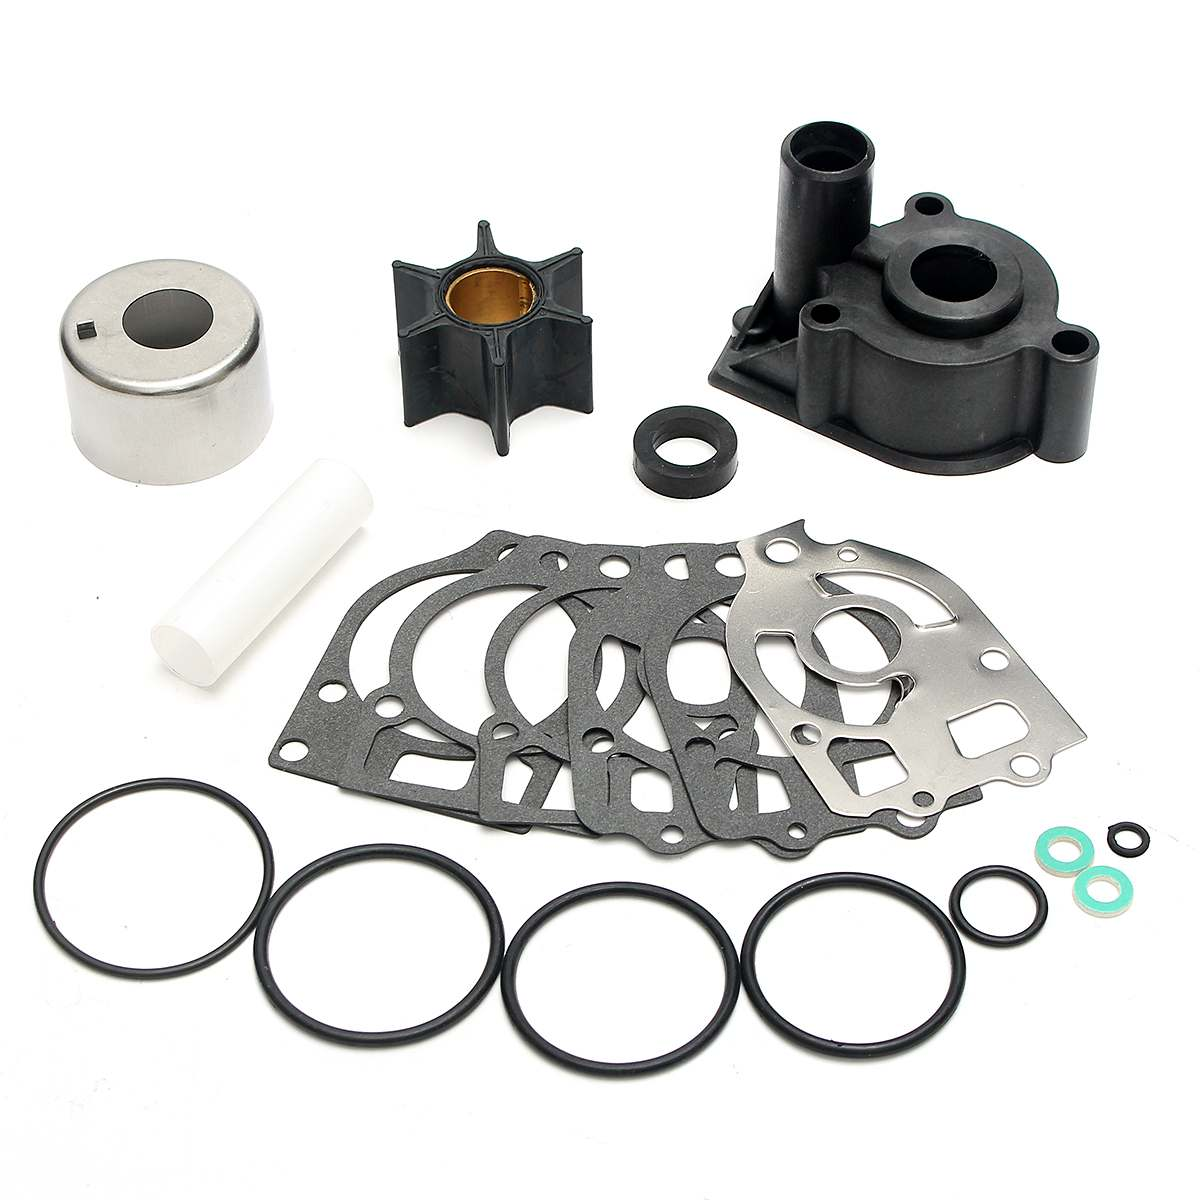 Mariner Water Pump Impeller Repair Kit For Mercury Mercruiser Alpha 1 46-96148T8 Boat Parts & Accessories 6 Blades Rubber+Metal